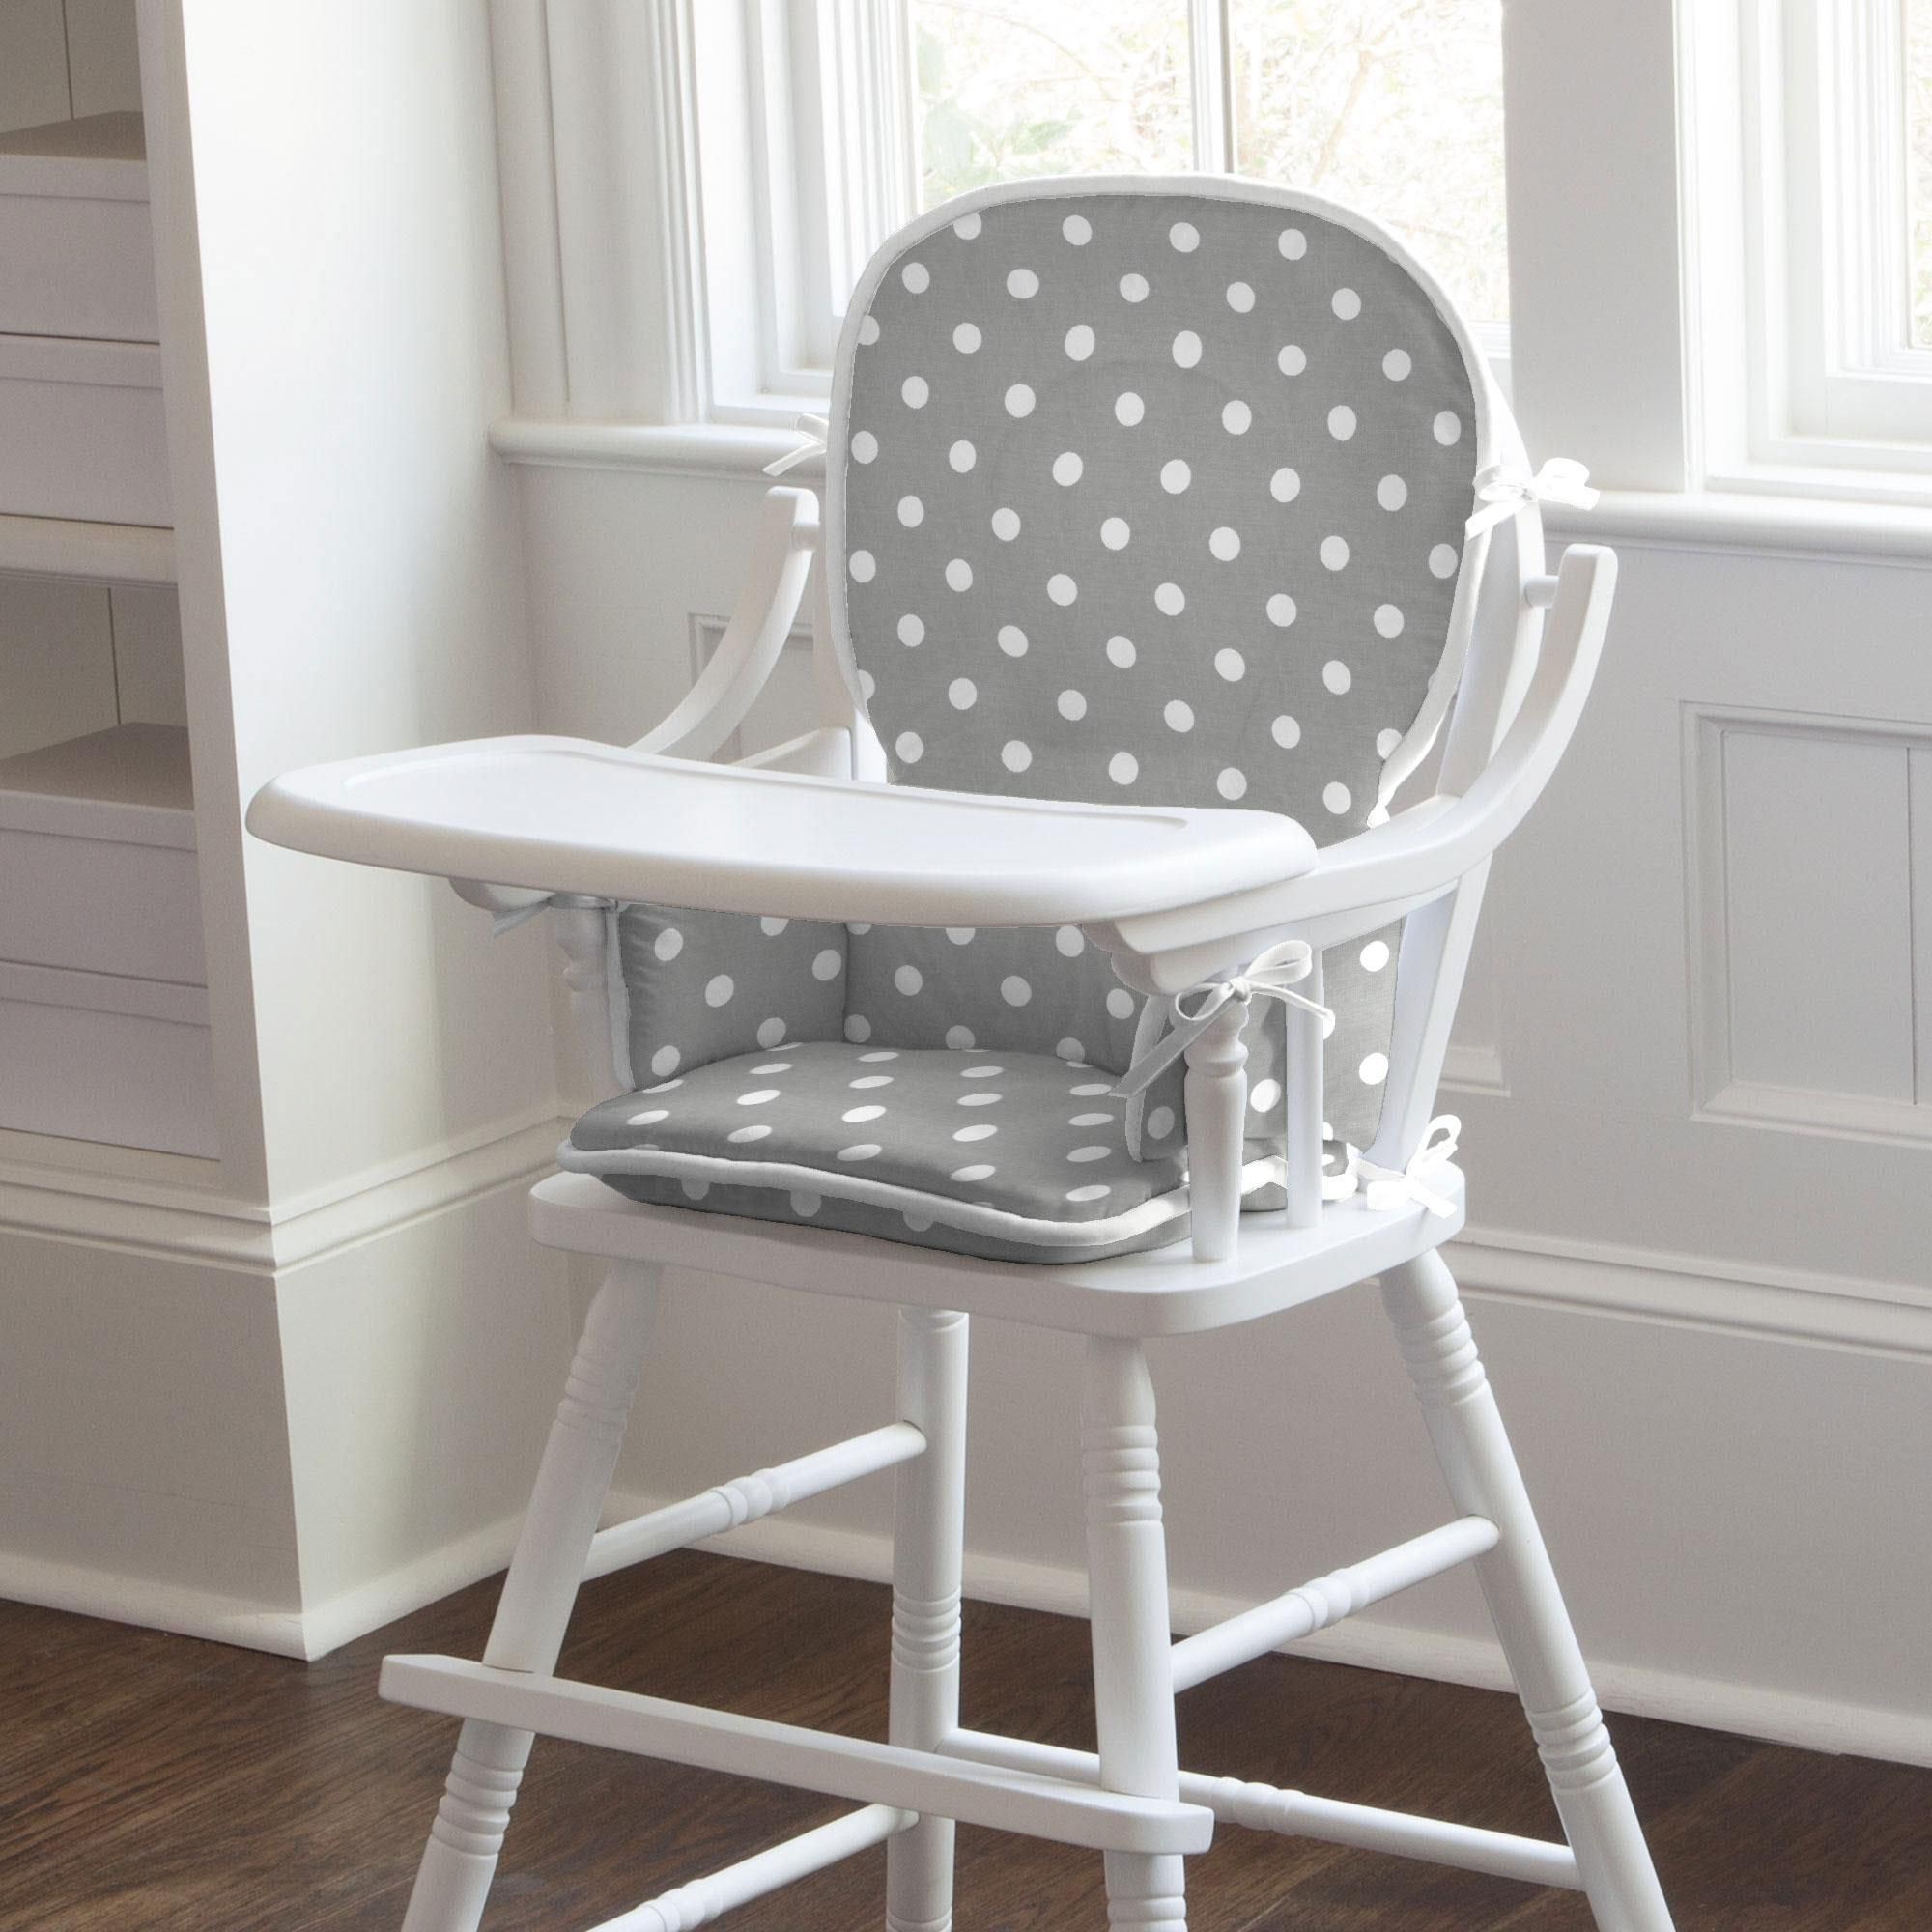 stokke high chair cushion sewing pattern tattoo gray and white dots stripes pad baby